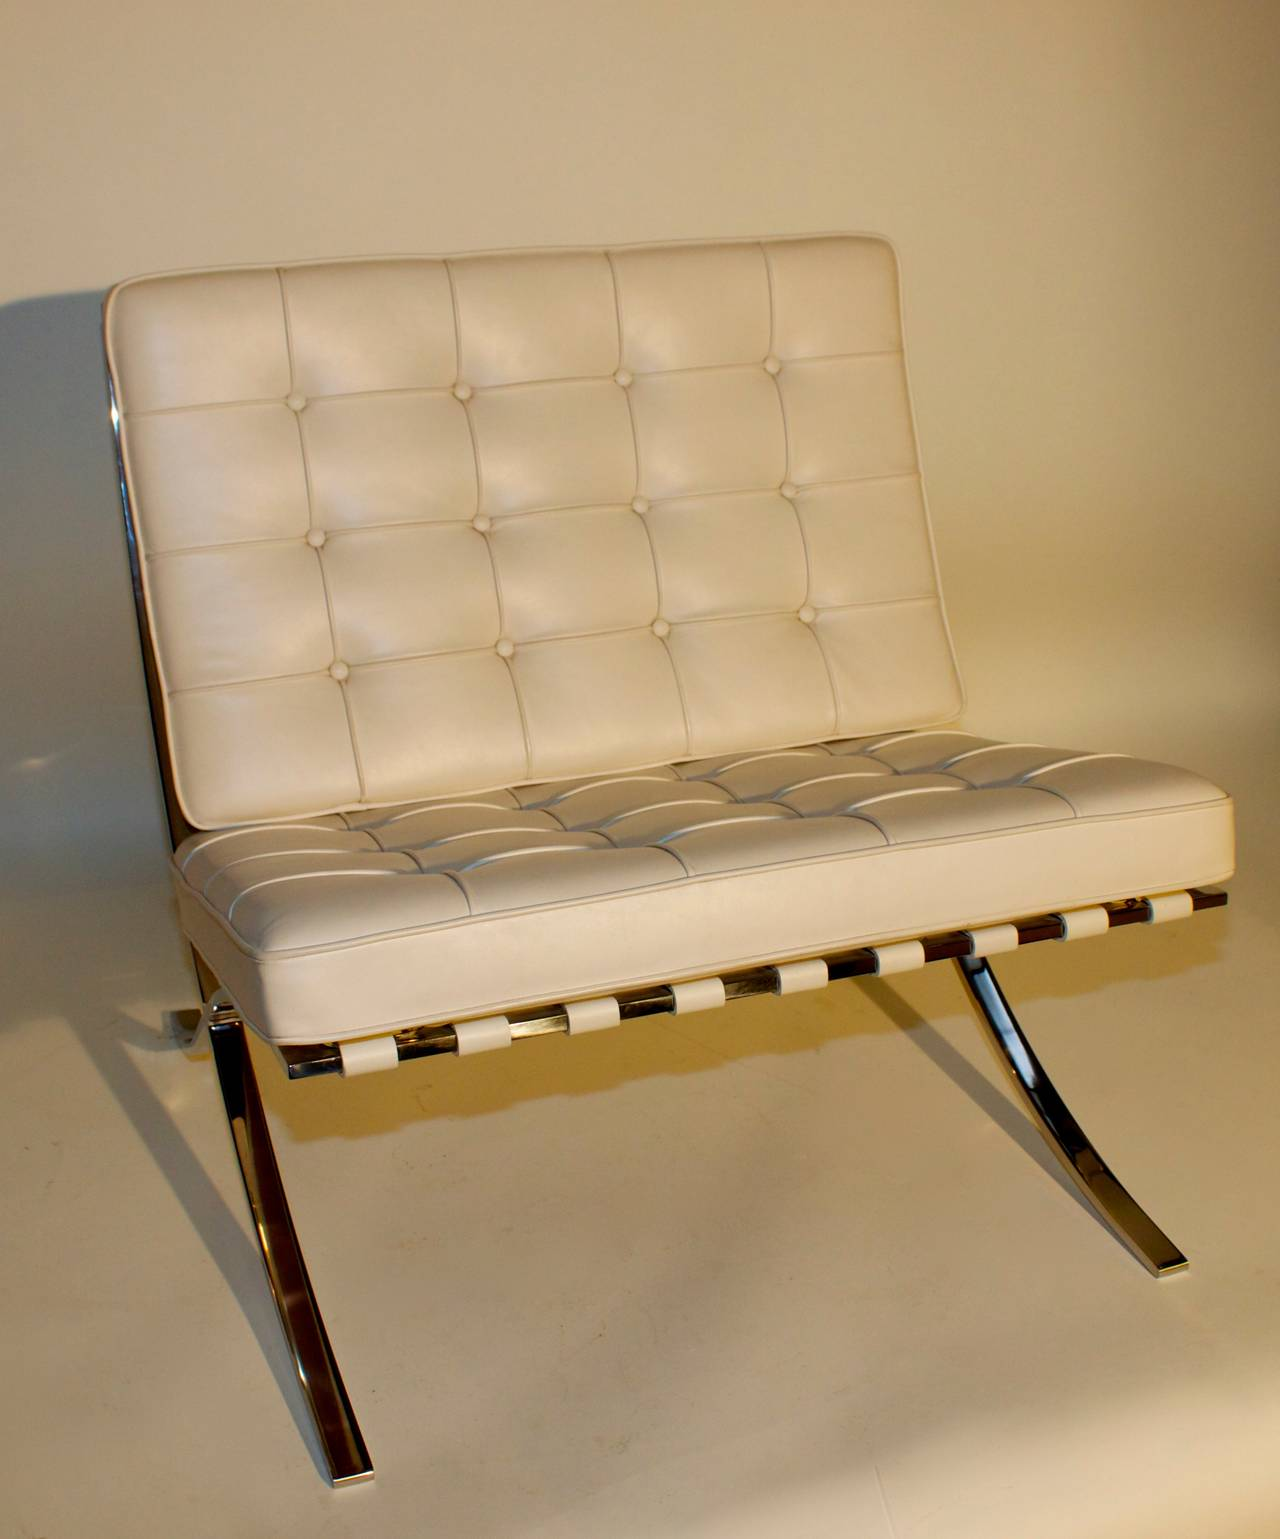 knoll barcelona chair and ottoman at 1stdibs. Black Bedroom Furniture Sets. Home Design Ideas